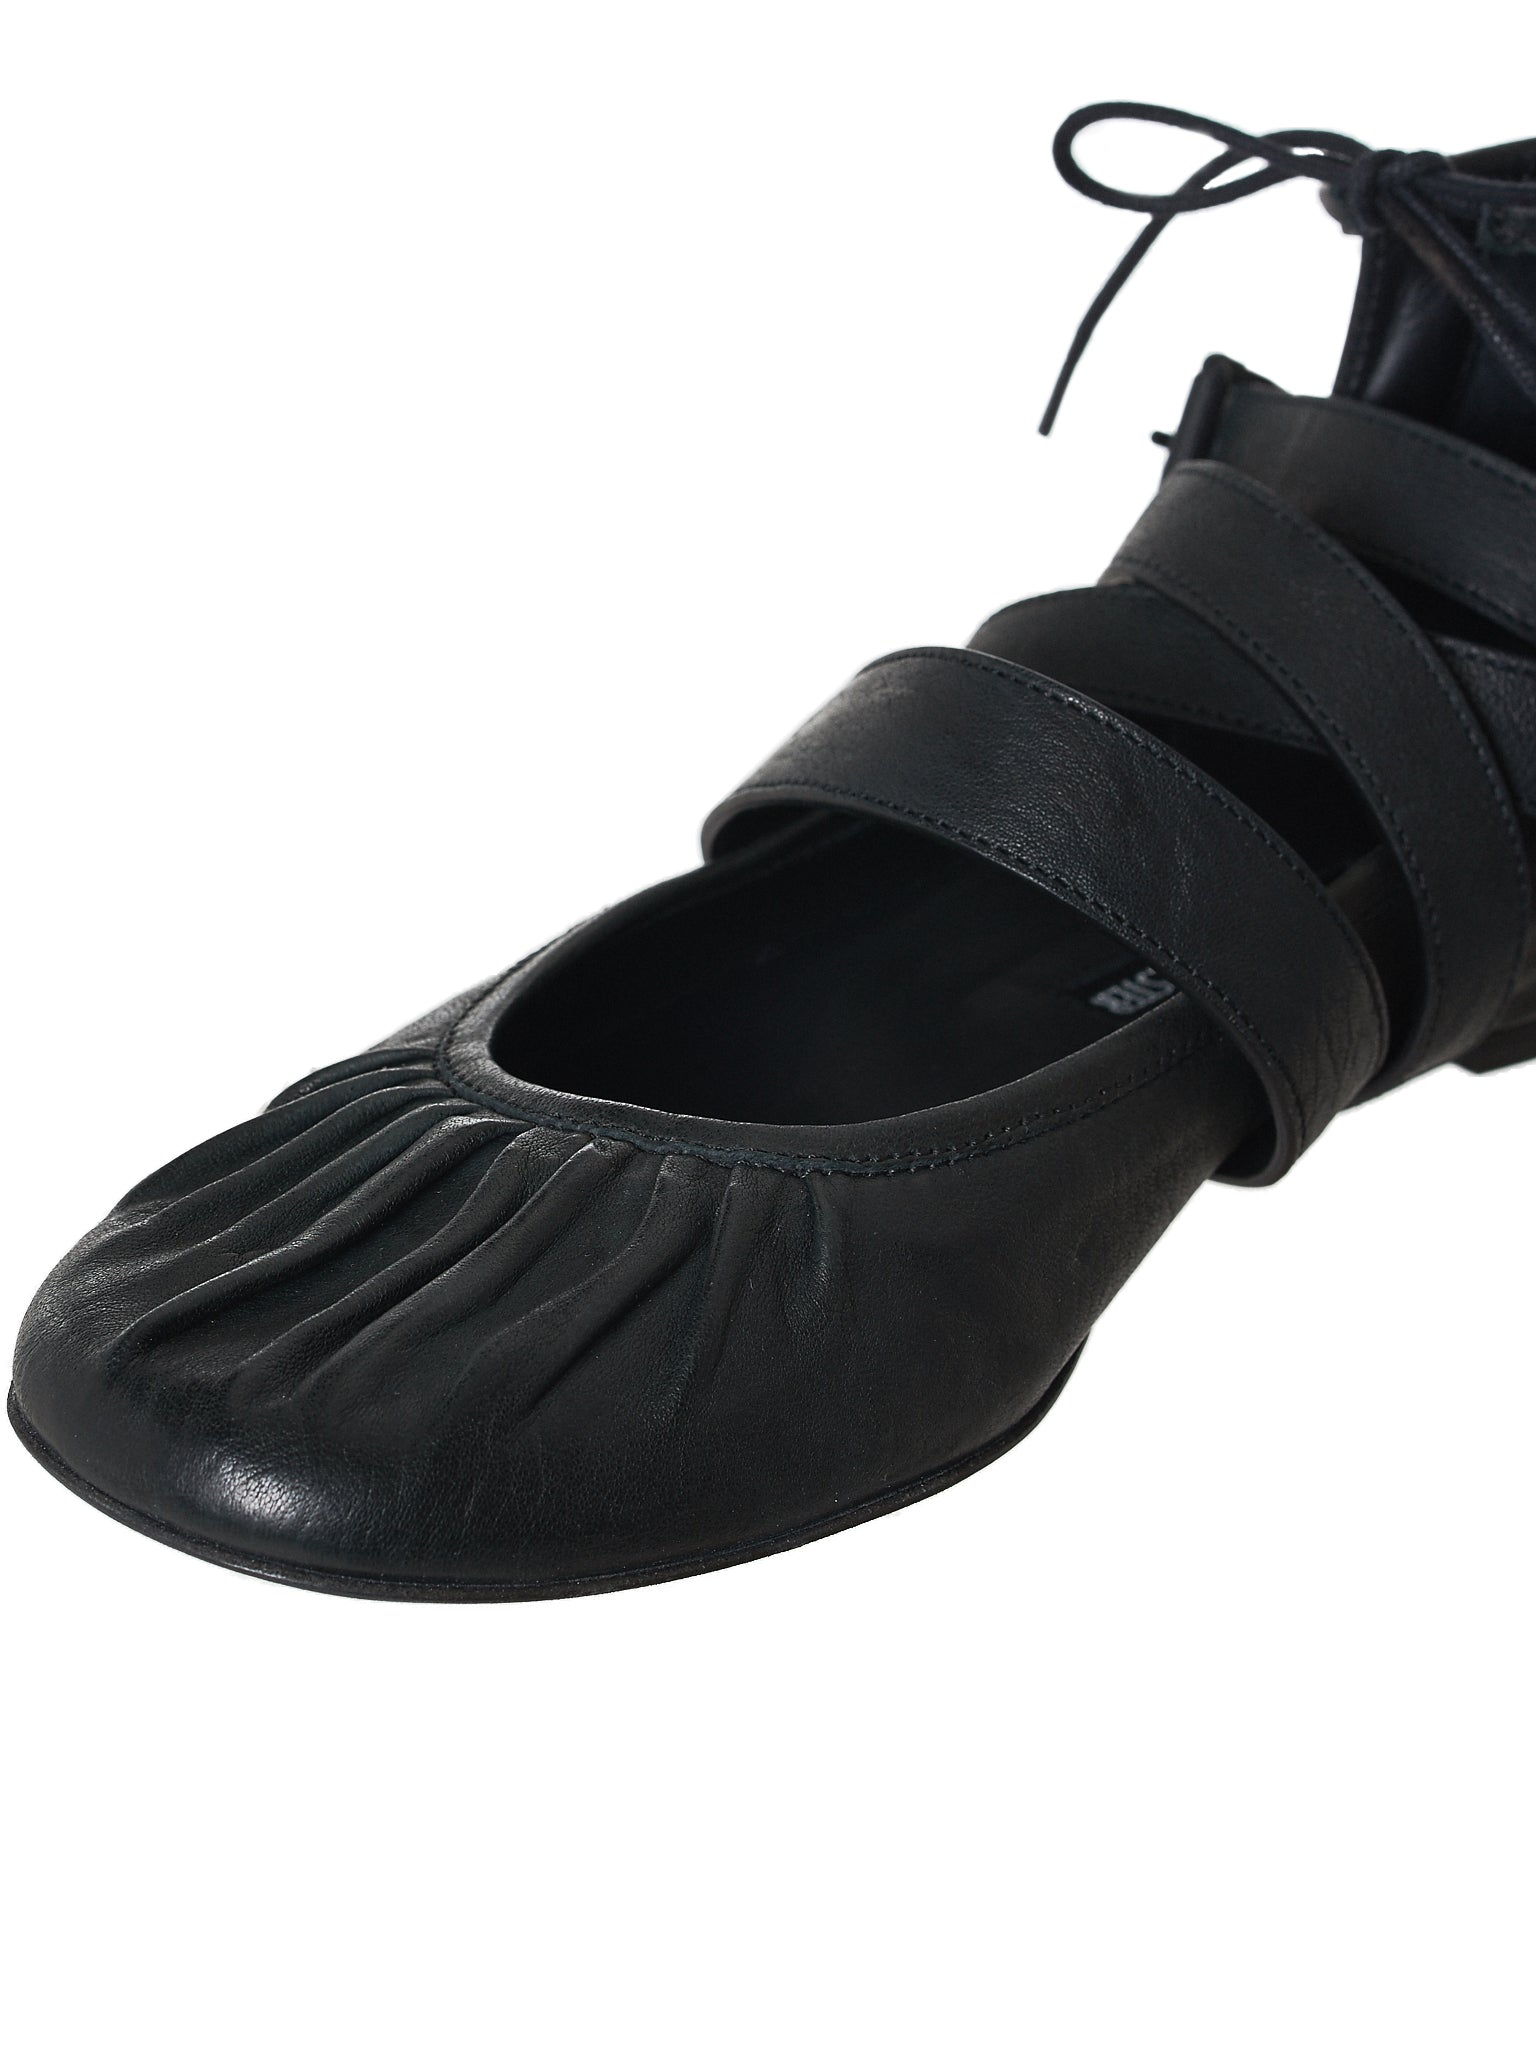 Ann Demeulemeester Leather Flats - Hlorenzo Detail 1